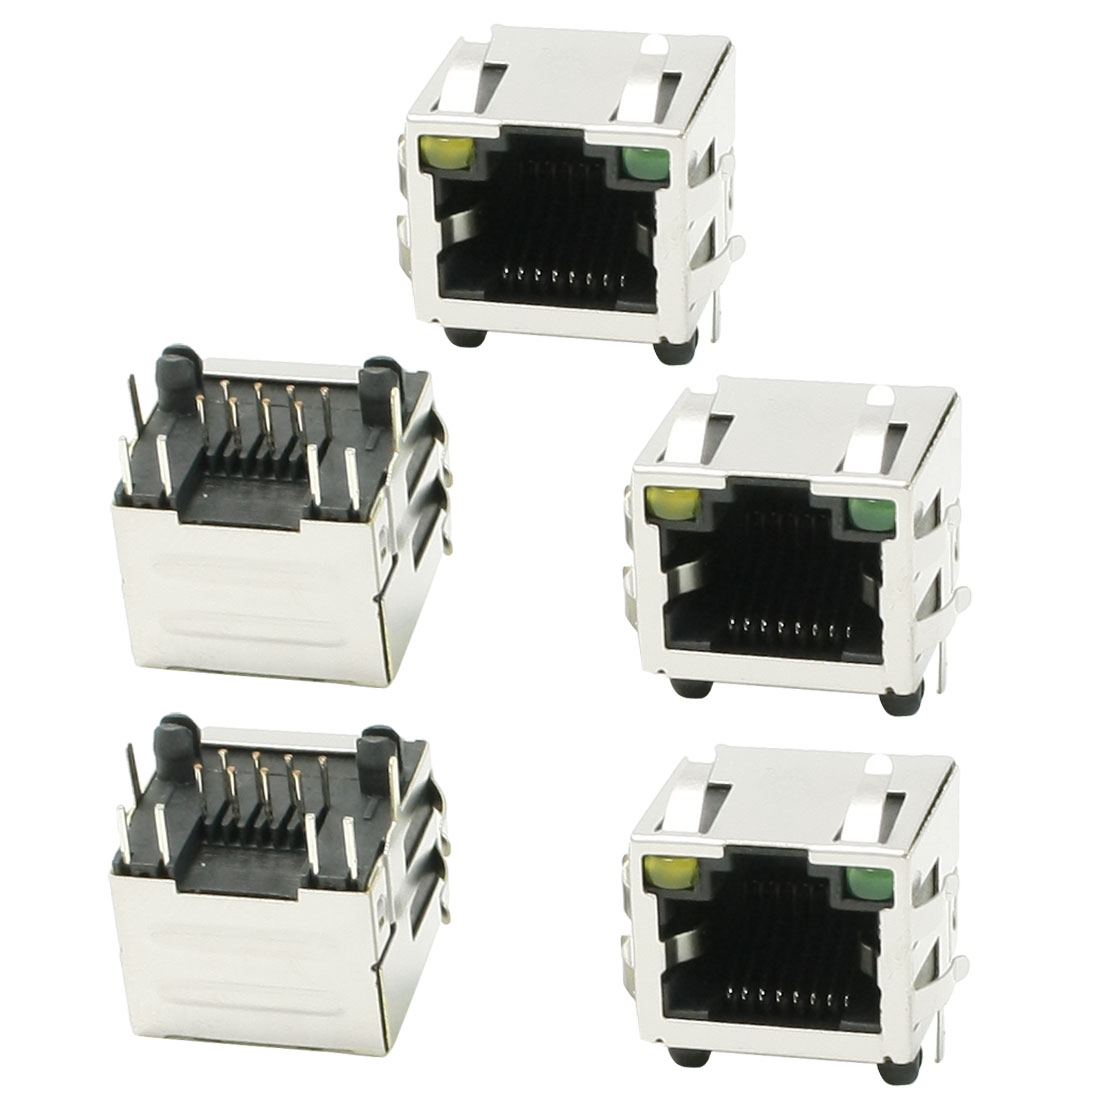 LED Light Horizontal RJ45 8P8C Modular Network PCB Jacks 16 x 16 x 13mm 5 Pcs